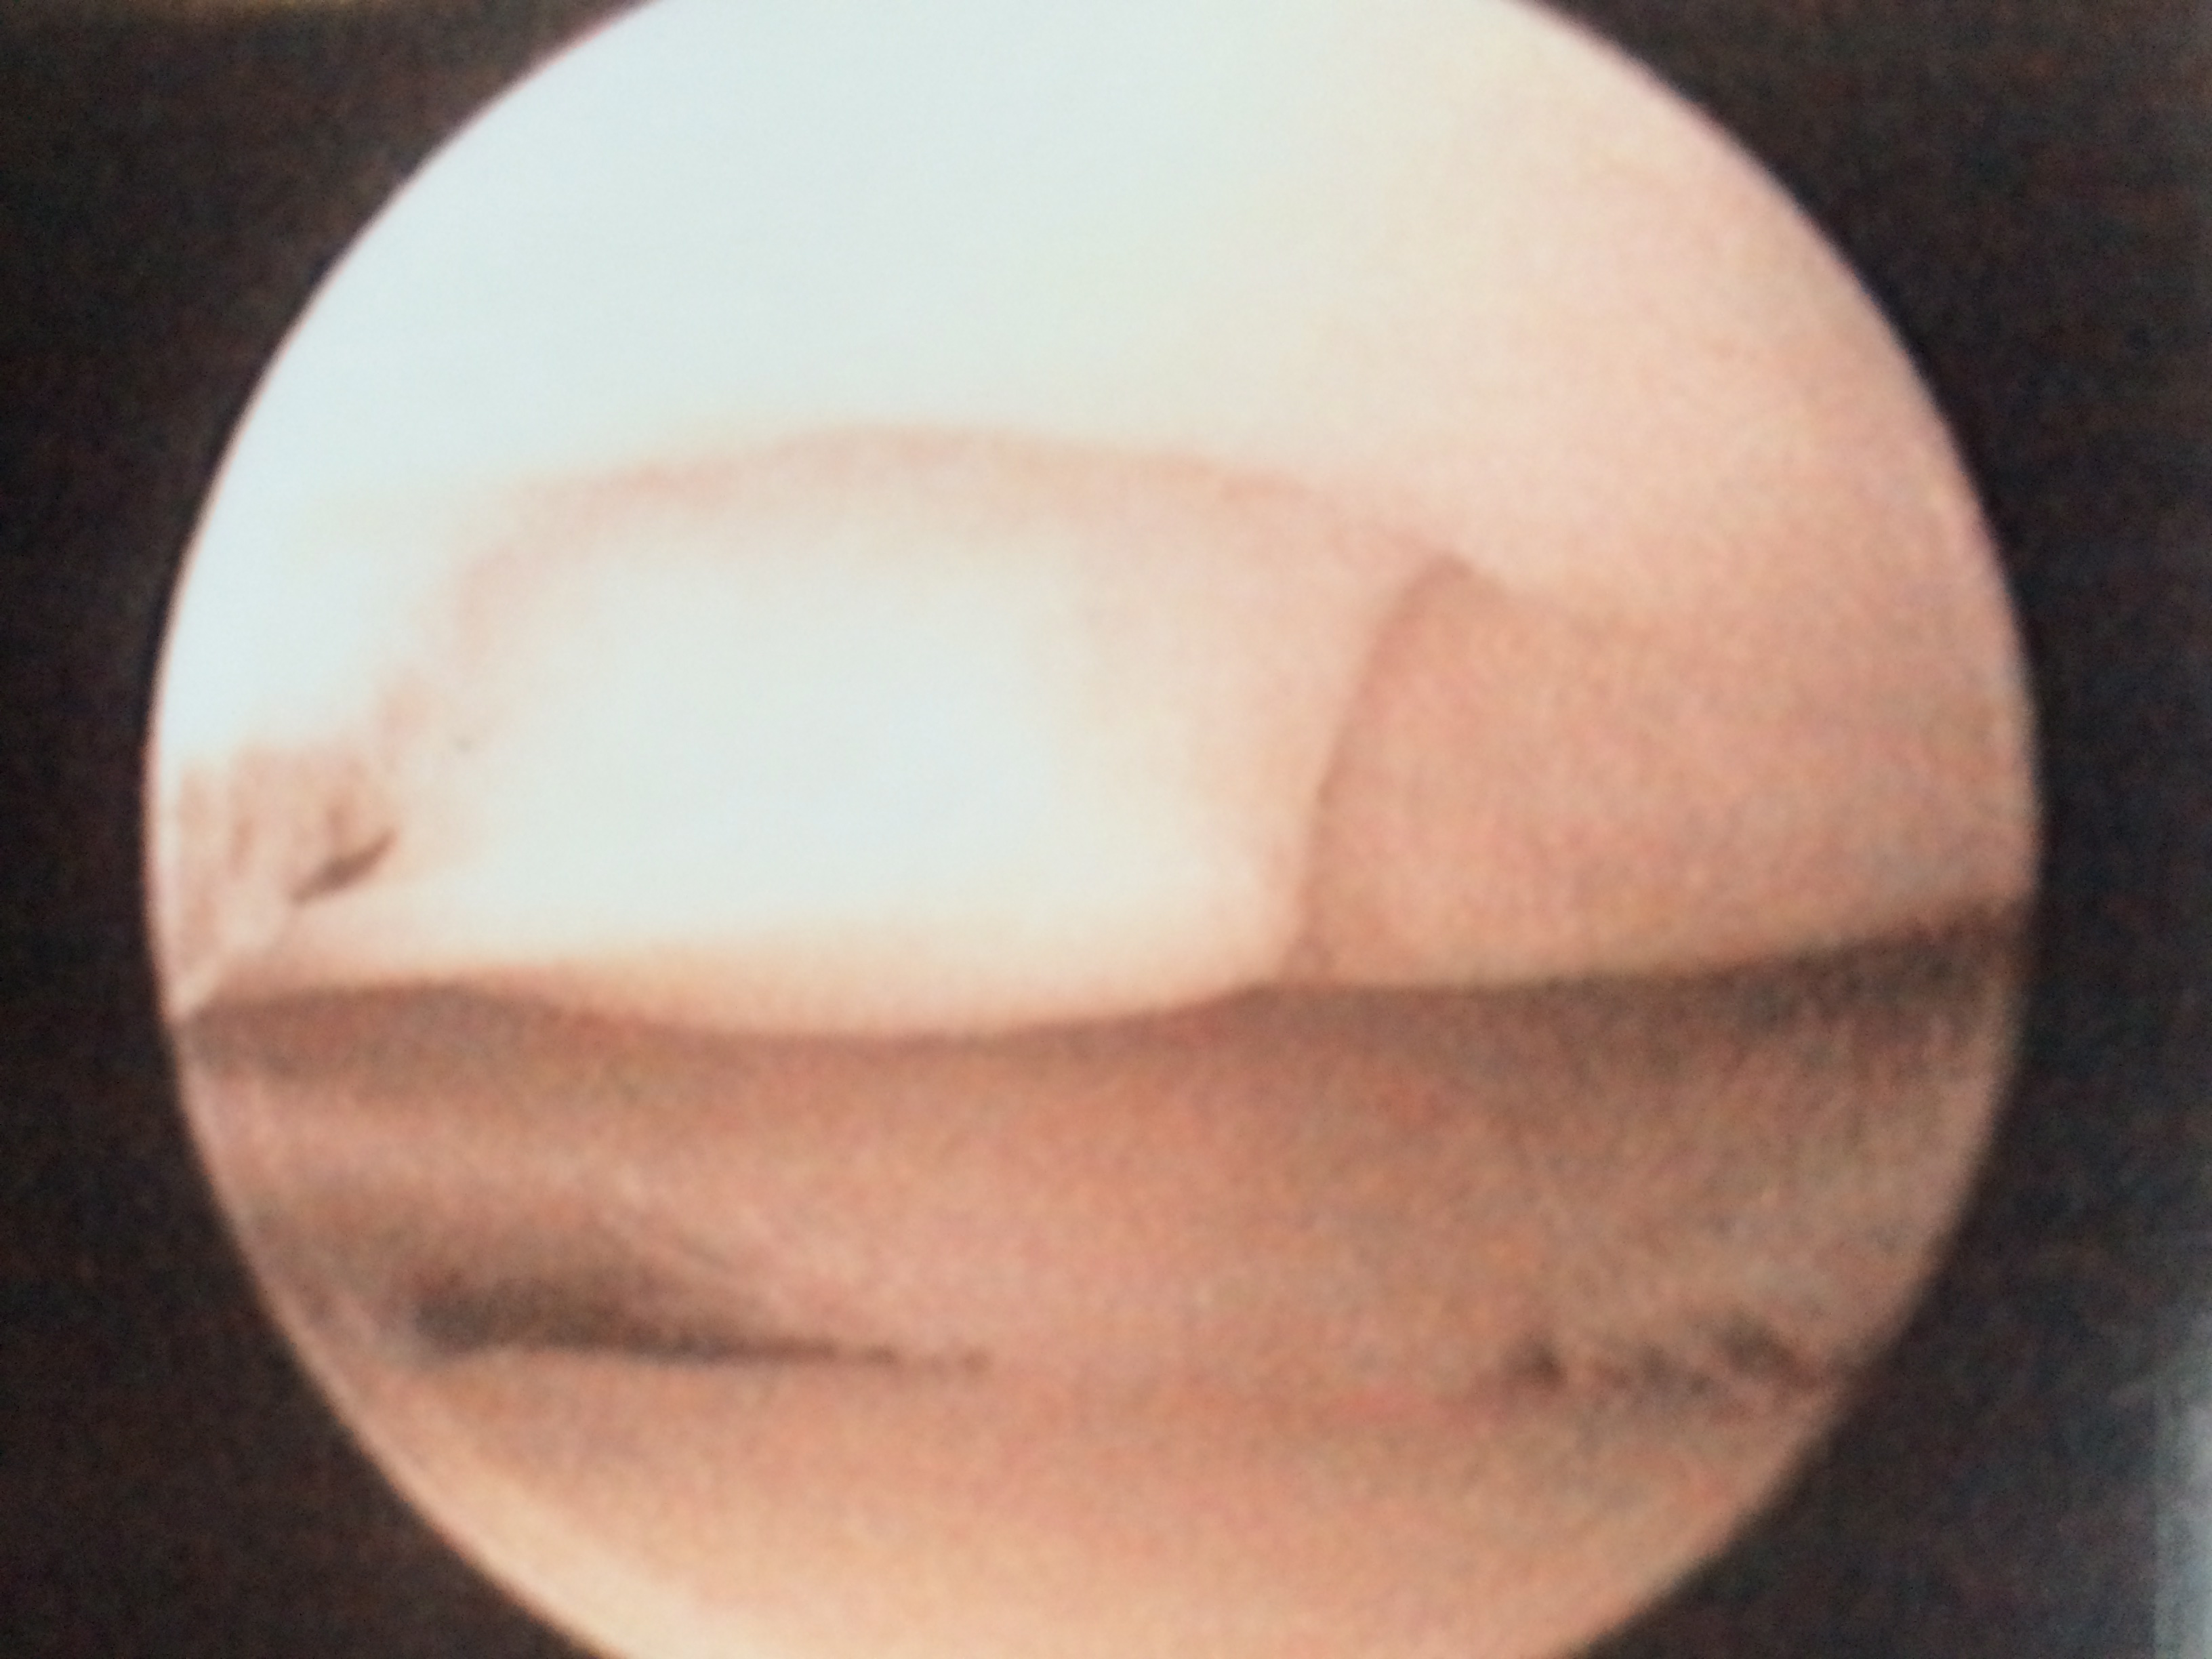 Arthroscopic photo of the author's knee. Note the chondral fracture just to the right of center on the distal femur.